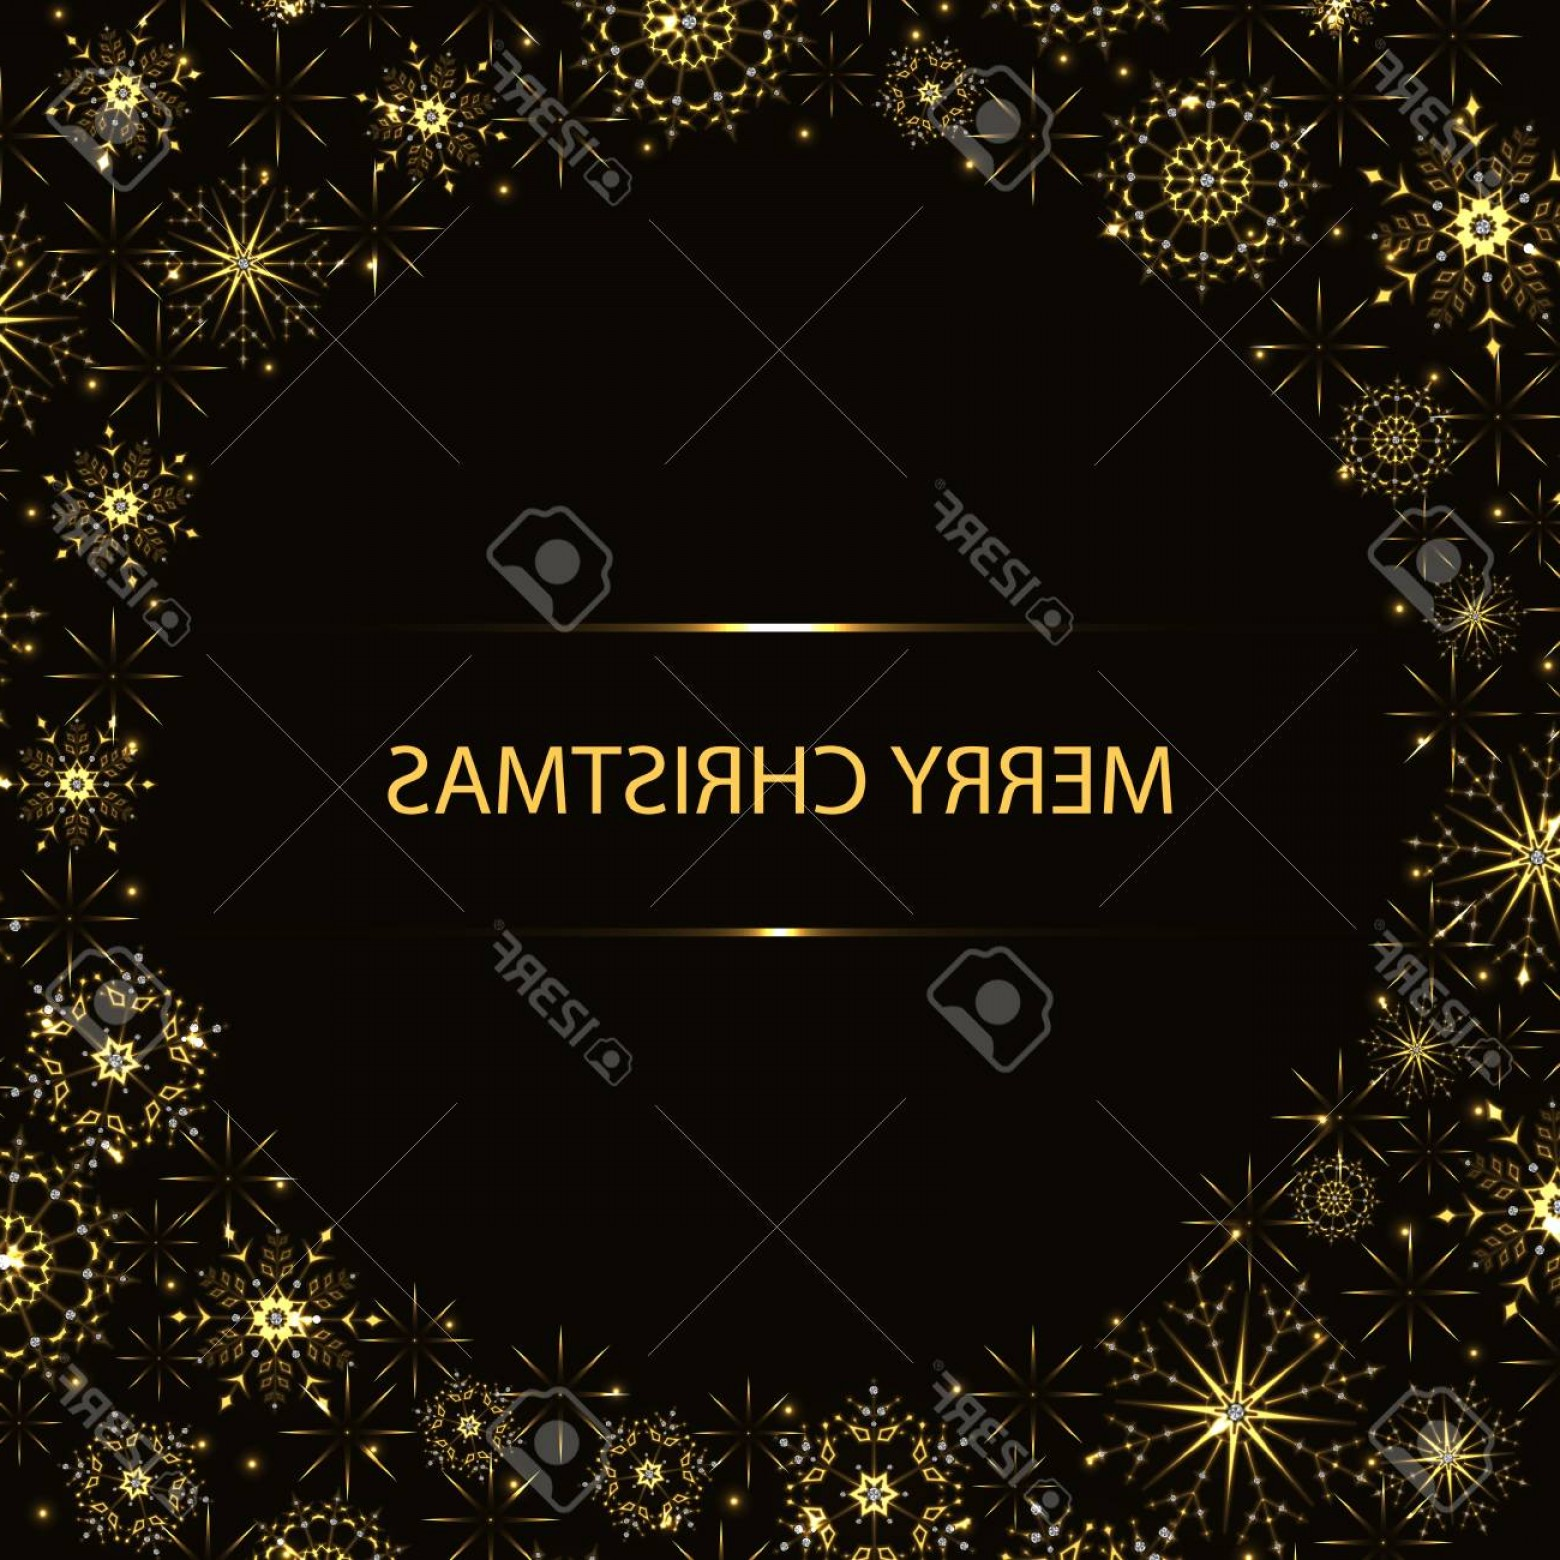 Stars Yellow Christmas Vector: Photostock Vector Abstract Yellow Christmas Background With Glittering Snowflakes And Stars